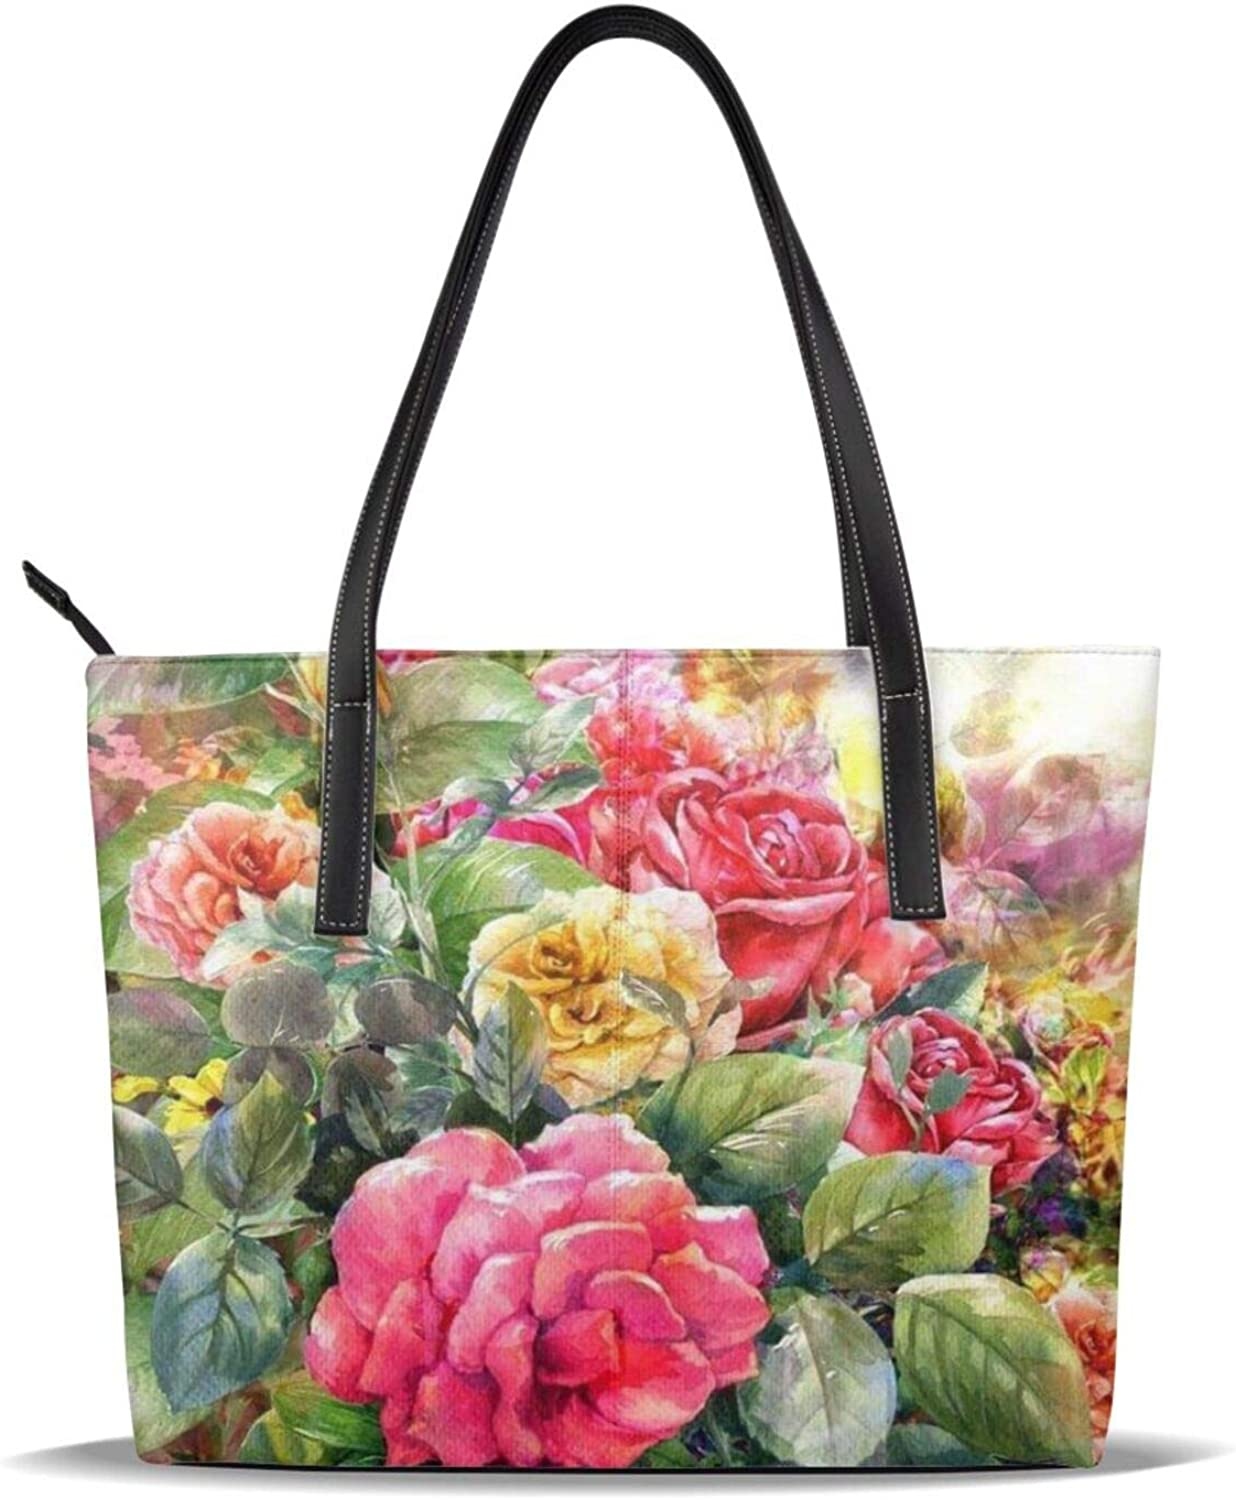 Weekly update Handbag Forest Deer Travel Gym Shopping Deluxe Tote Ba Reusable Grocery